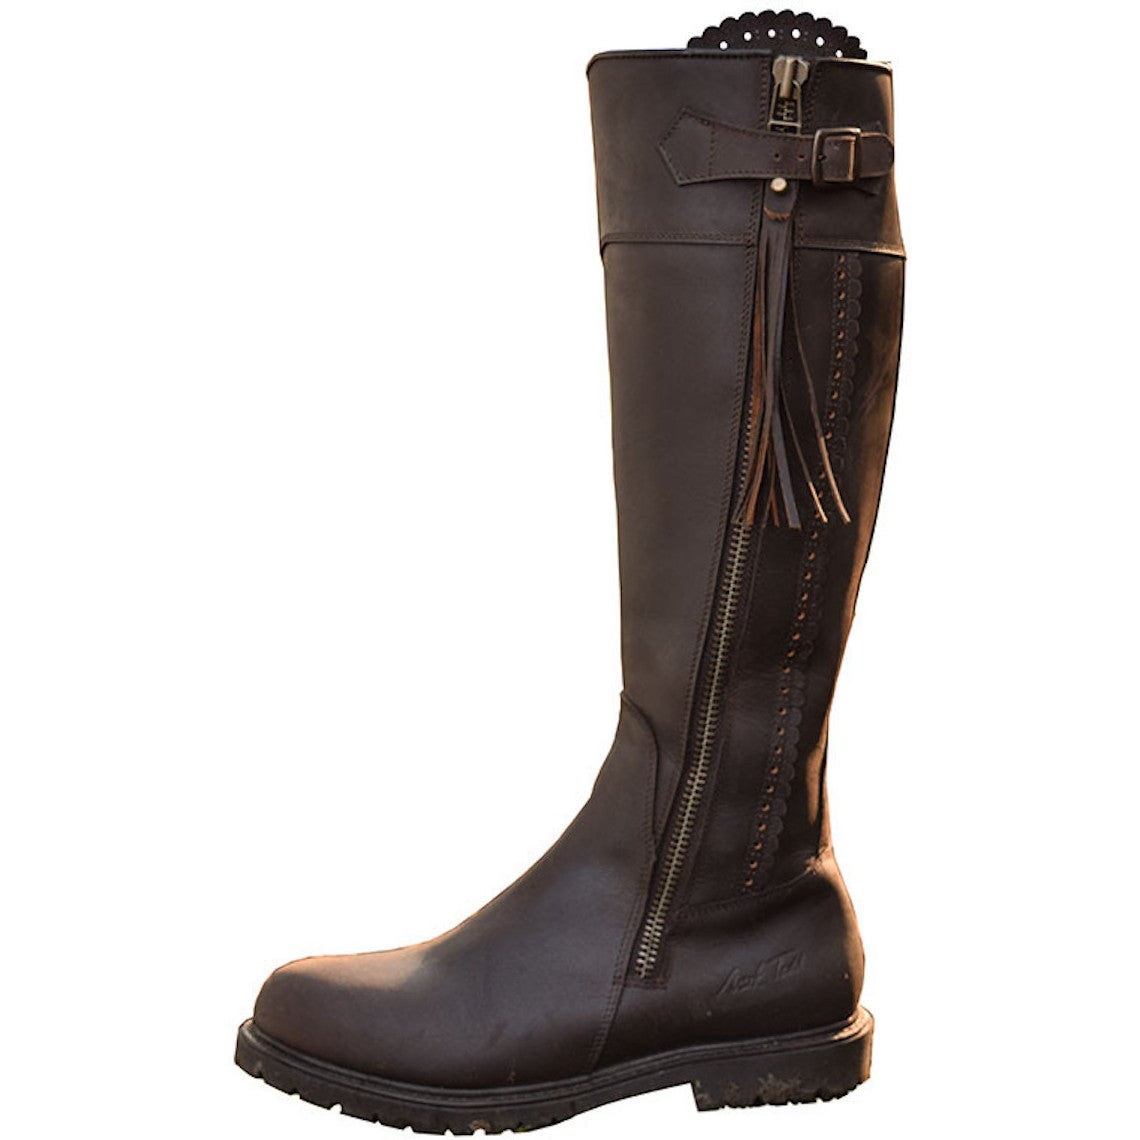 5eee75cefcc Mark Todd Masterton Tall Ladies Long Riding Boots from Rideaway